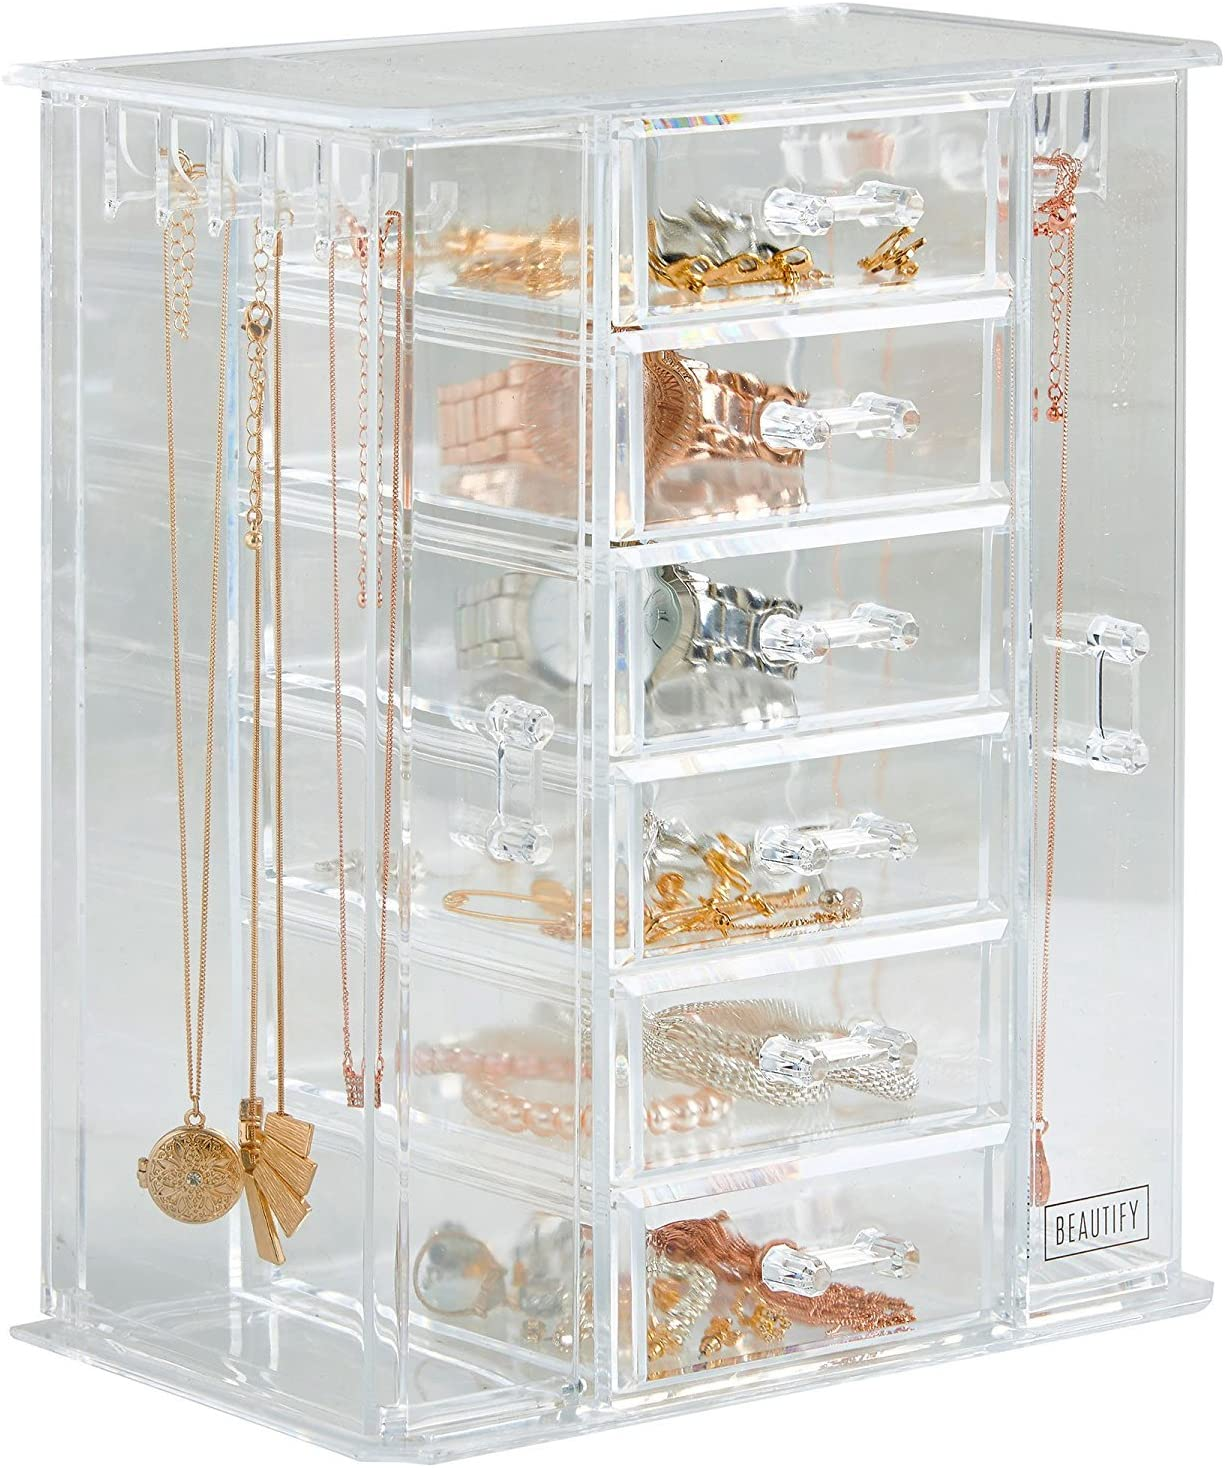 Beautify Acrylic Jewelry Organizer Chest Makeup Storage Box With 6 Drawers Necklace Holder Clear Amazon Ca Home Kitchen